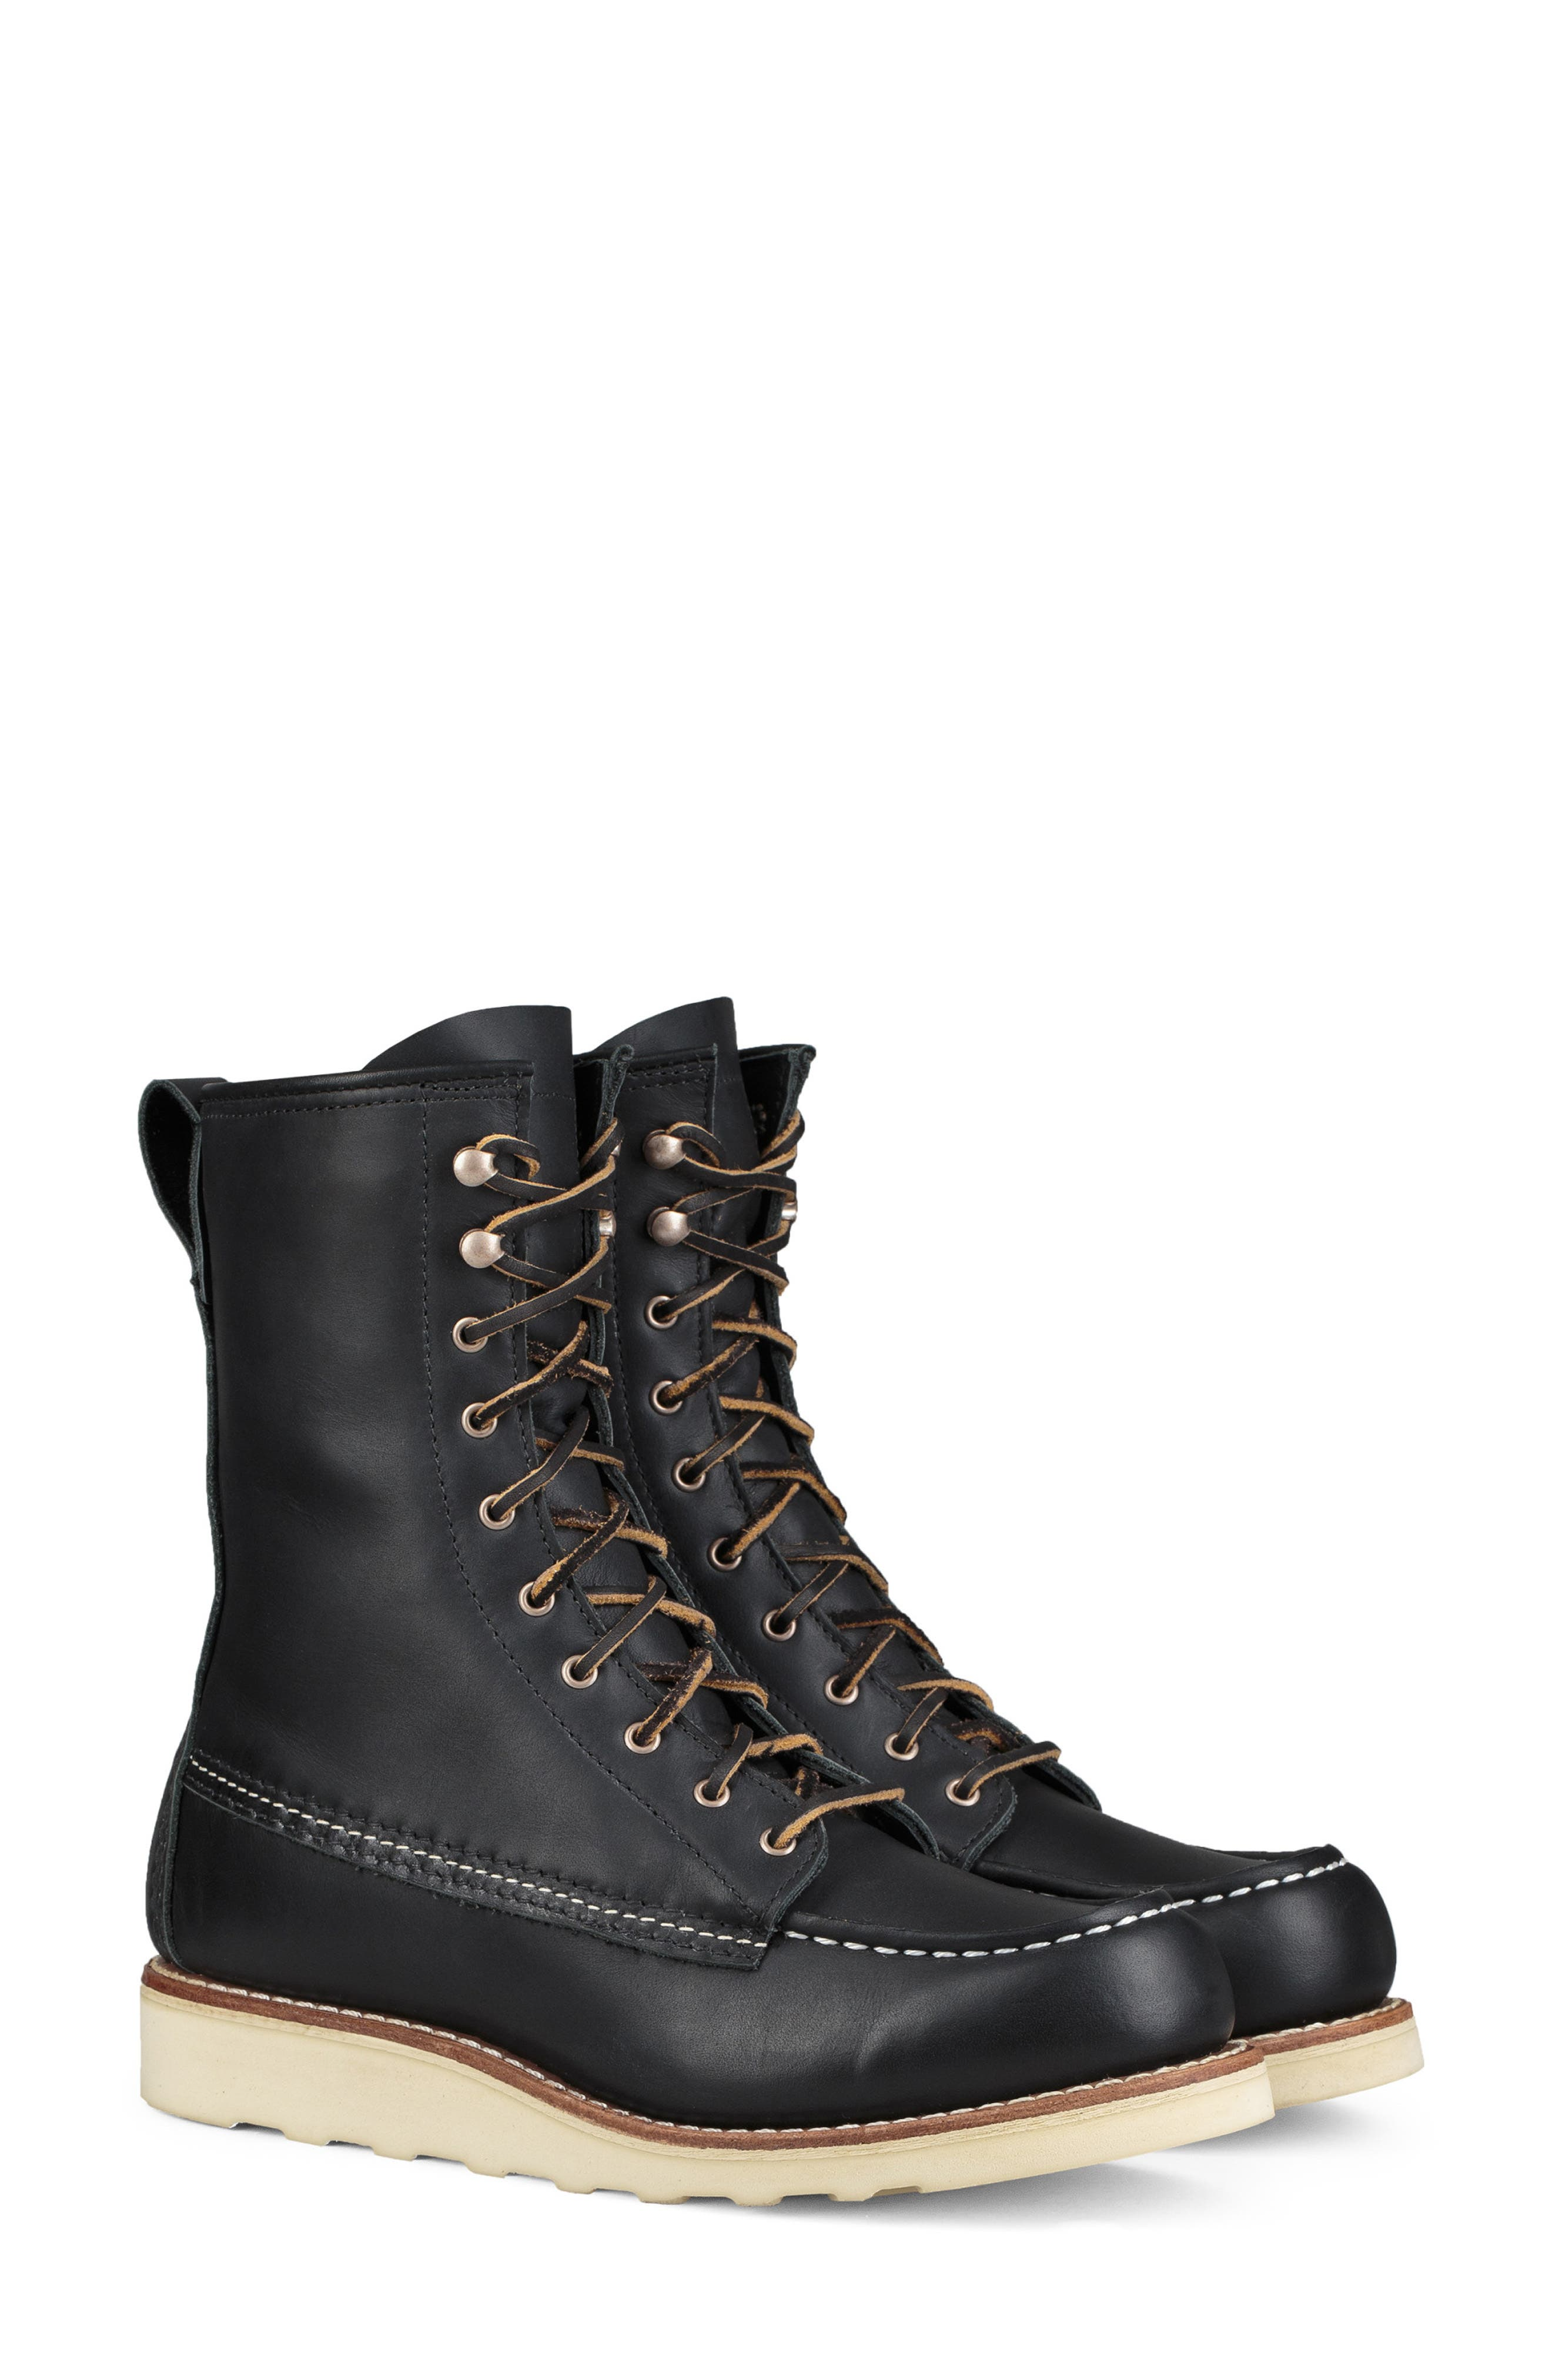 8-Inch Moc Boot, Main, color, BLACK BOUNDARY LEATHER